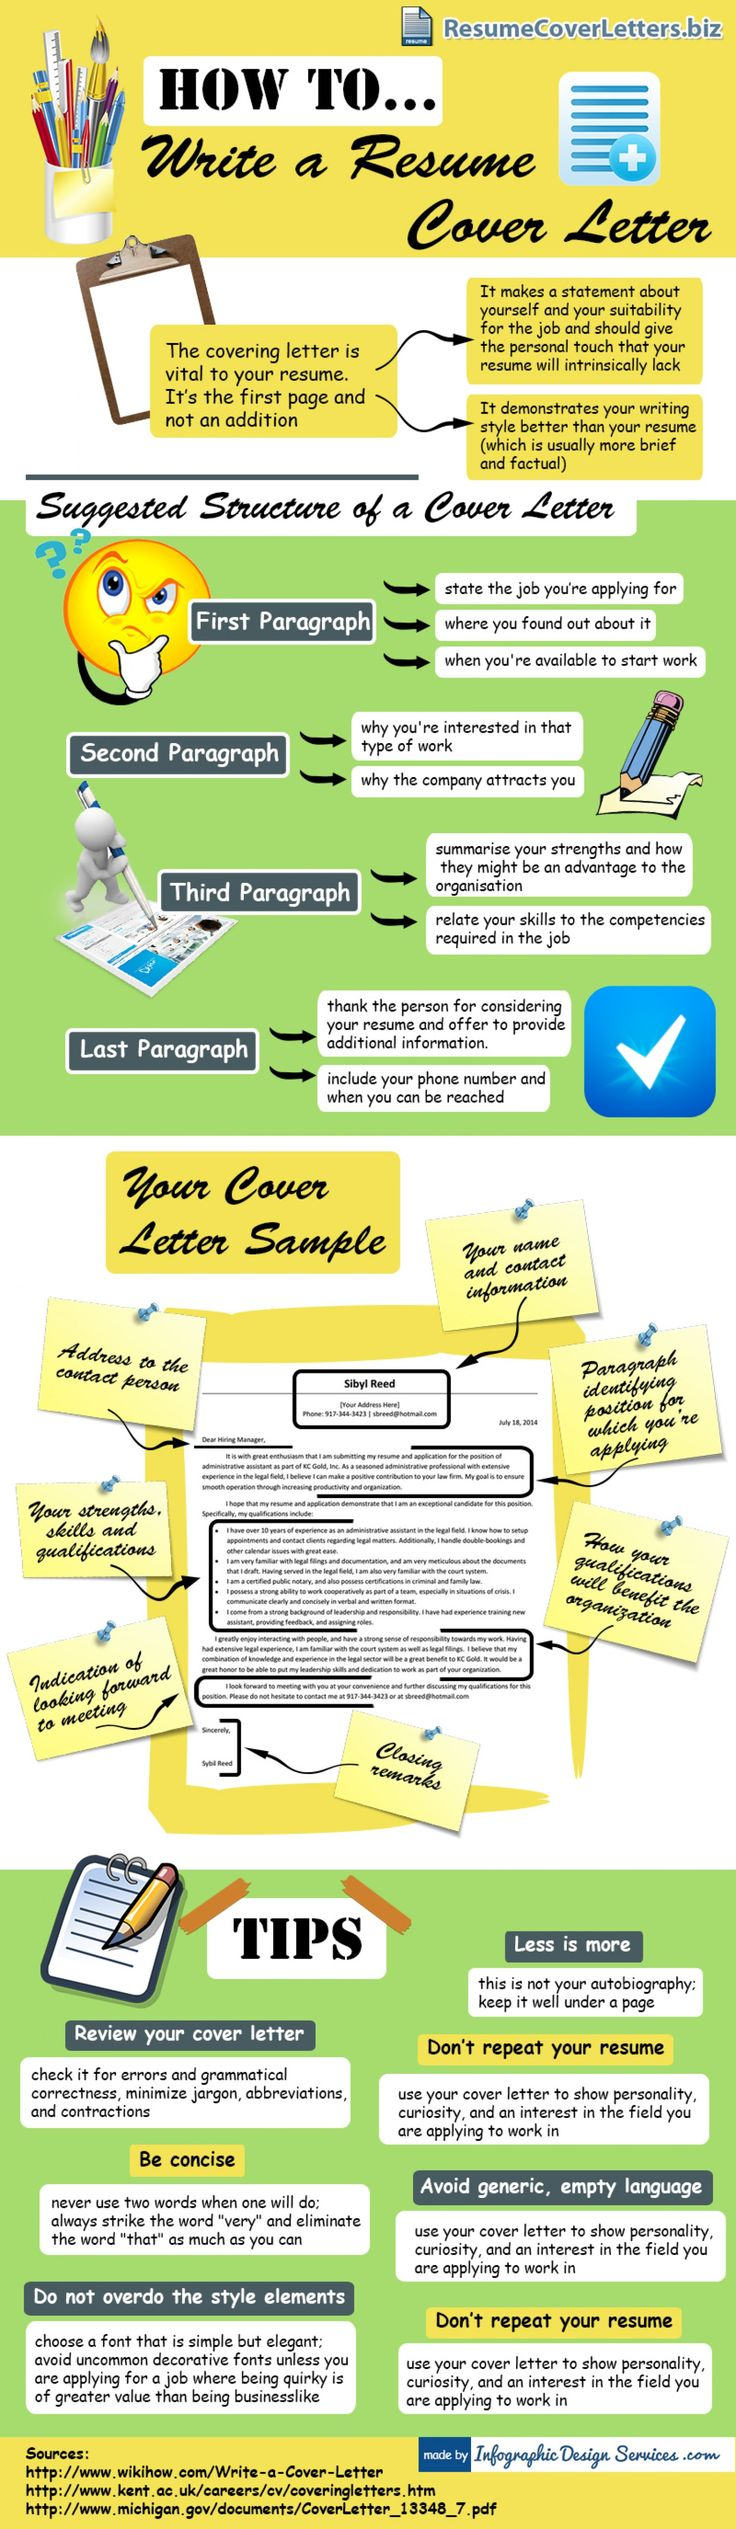 Best 20+ Resume writing tips ideas on Pinterest | Cv writing tips ...